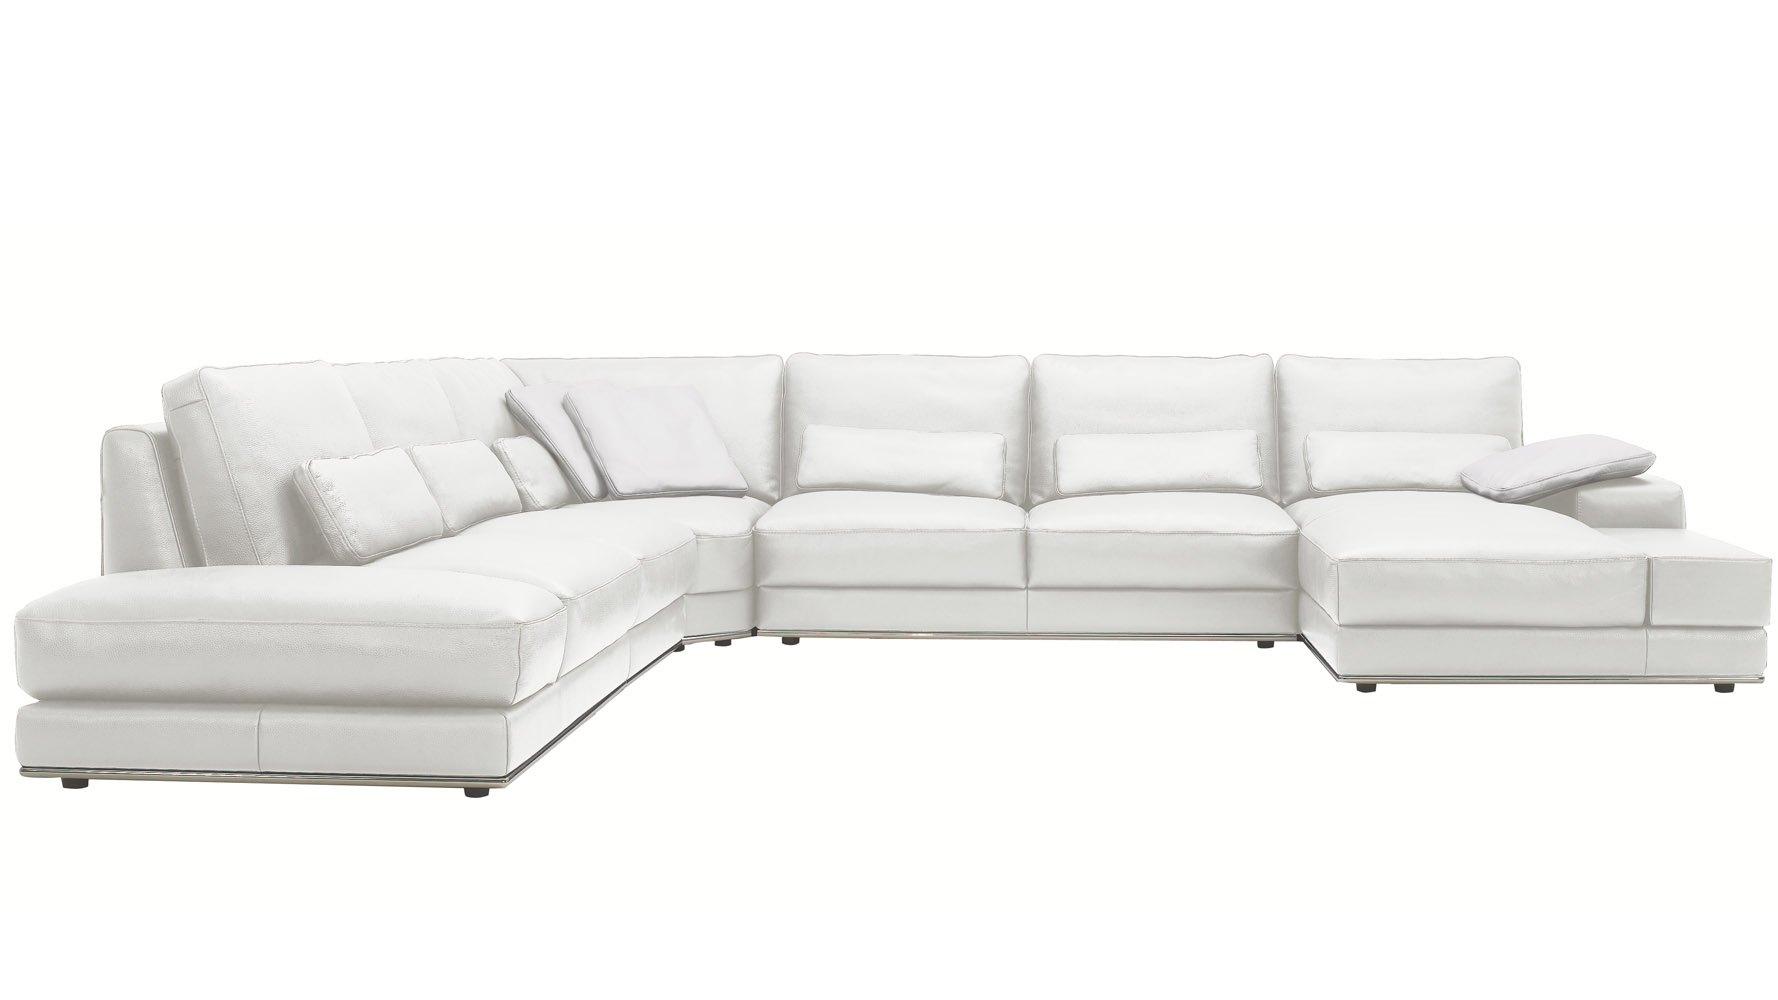 3 piece leather sectional sofa with chaise multi purpose design modern white nolan zuri